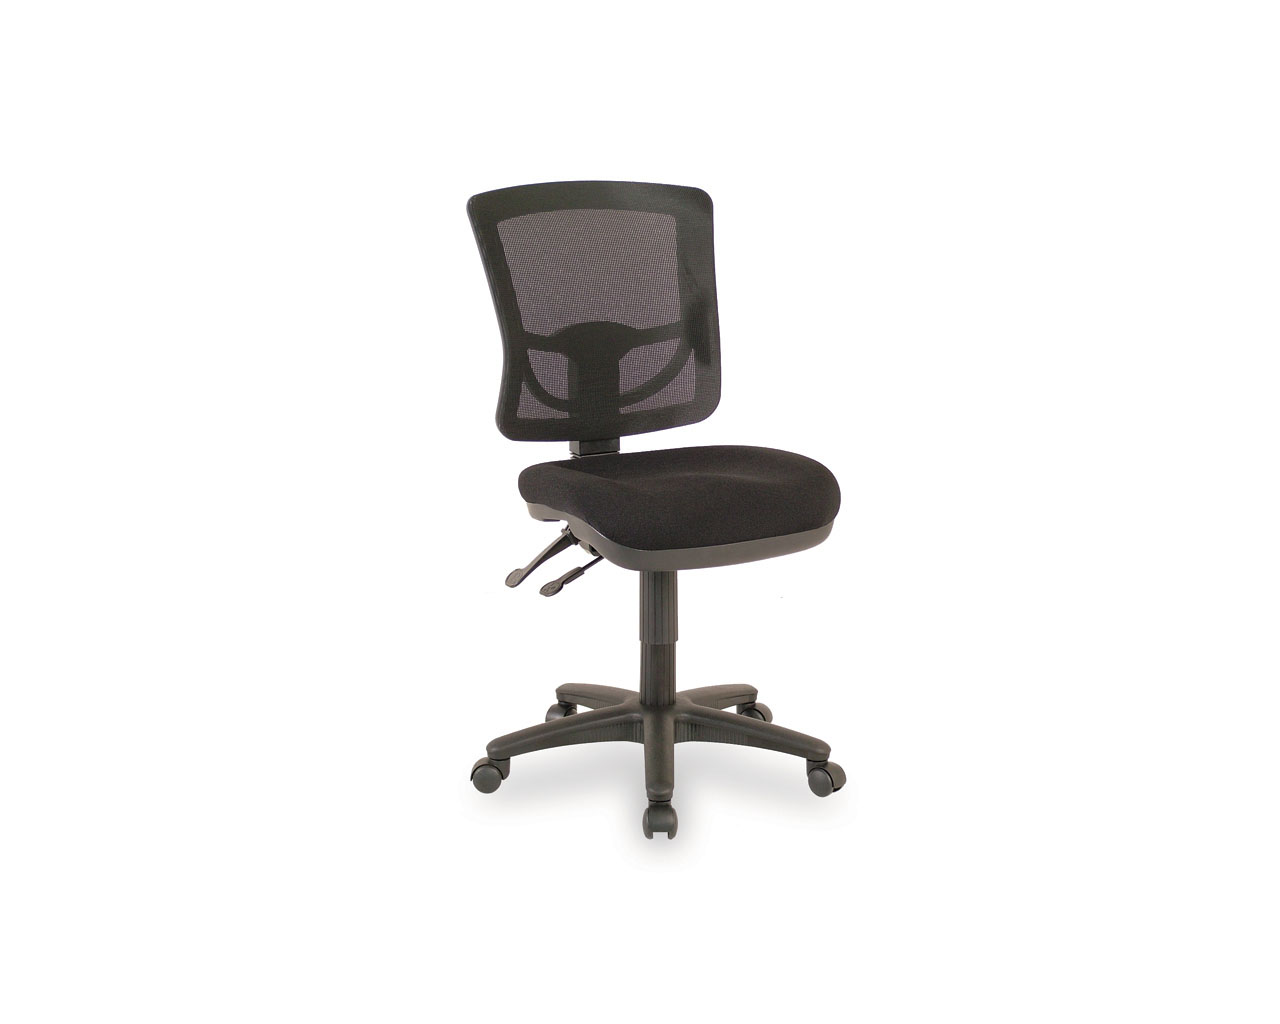 sa undef src picid height chair ch adjustable color image relief mesh dark office beliani blue type